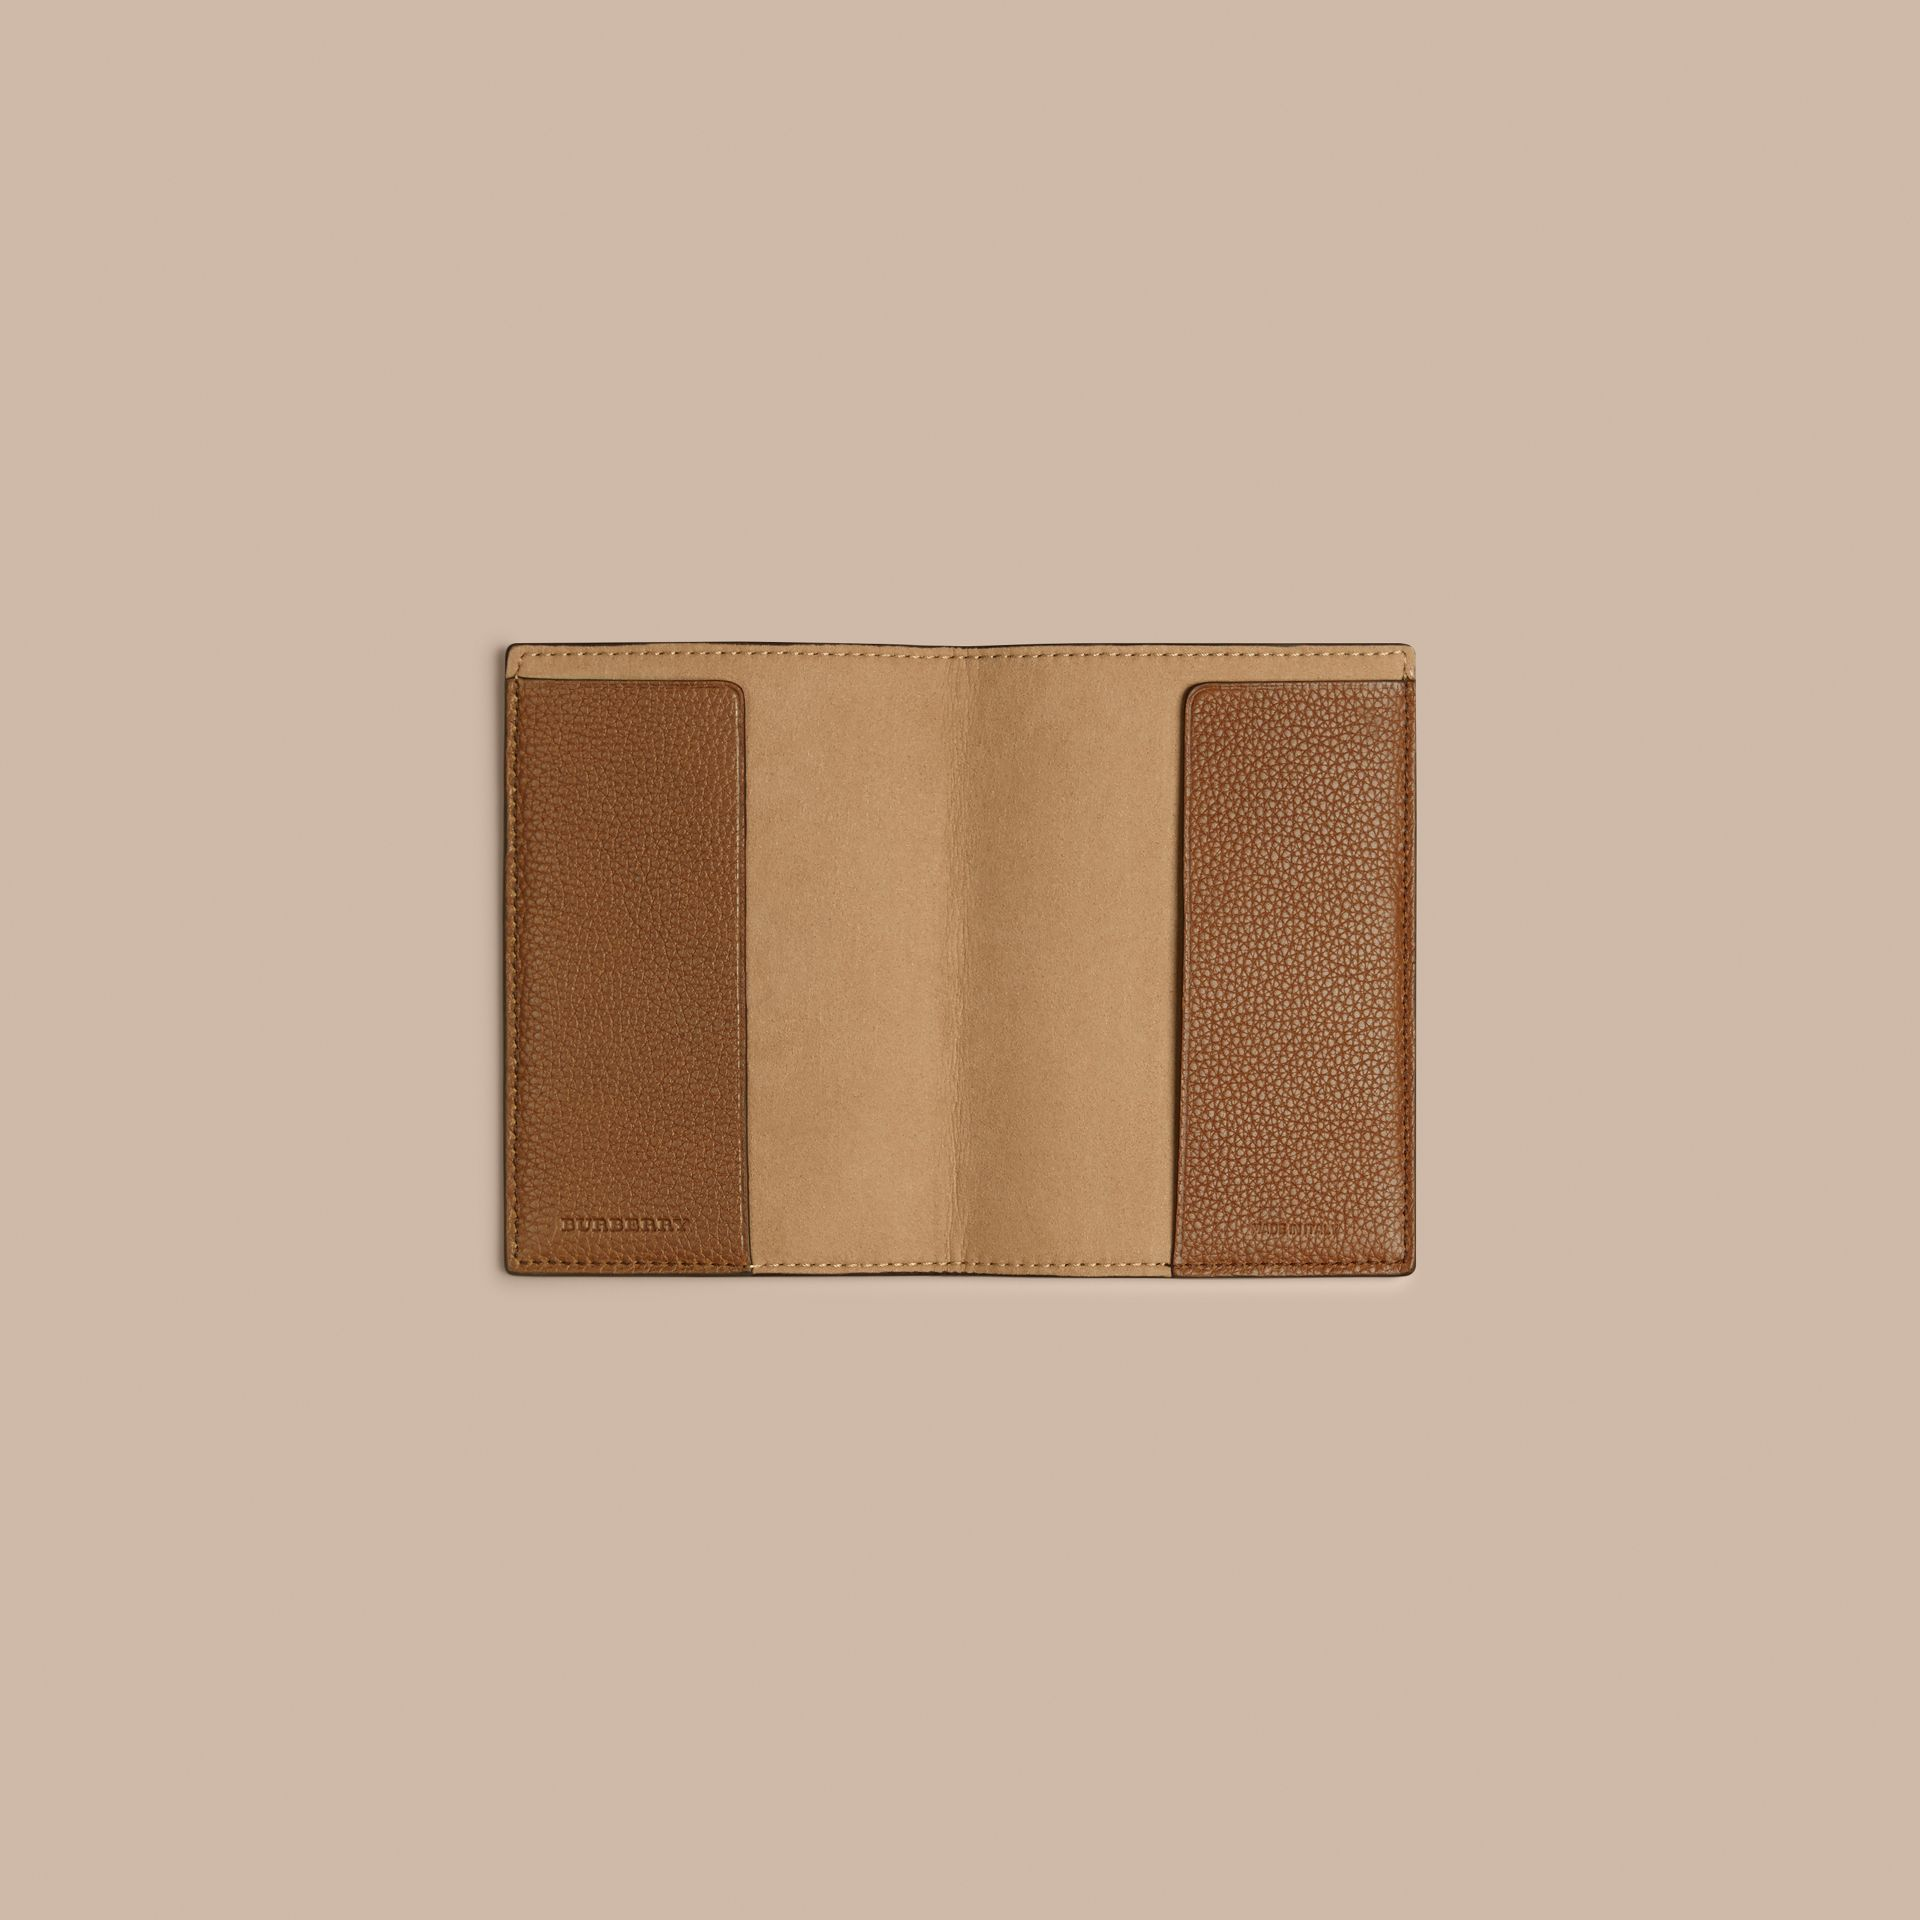 Grainy Leather Passport Cover in Tan | Burberry - gallery image 3